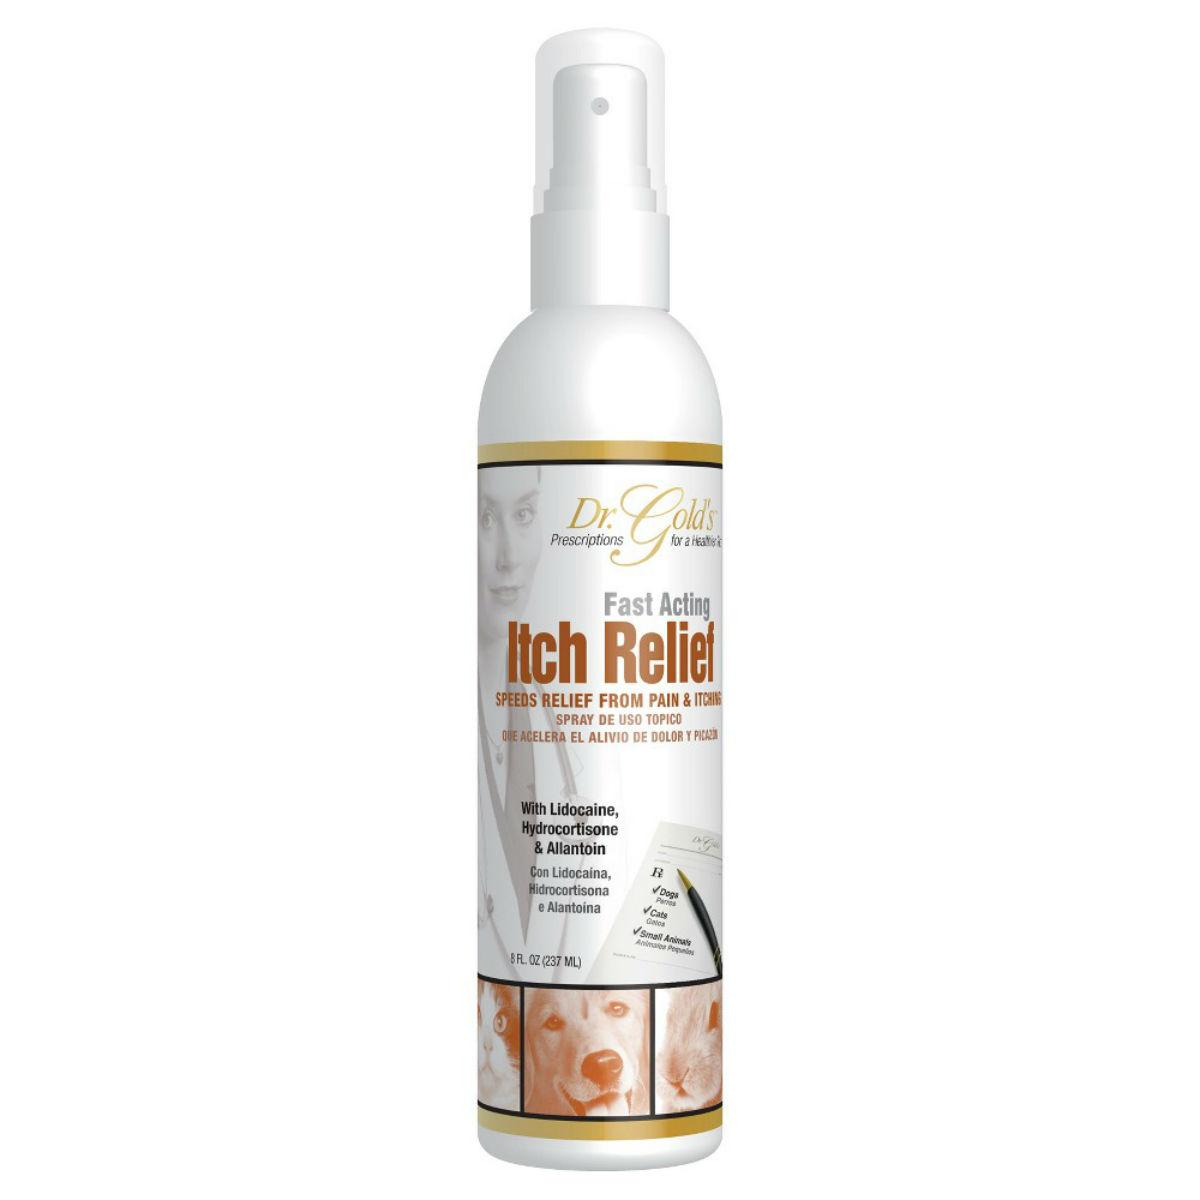 Dr. Gold's Itch Relief Dog Spray